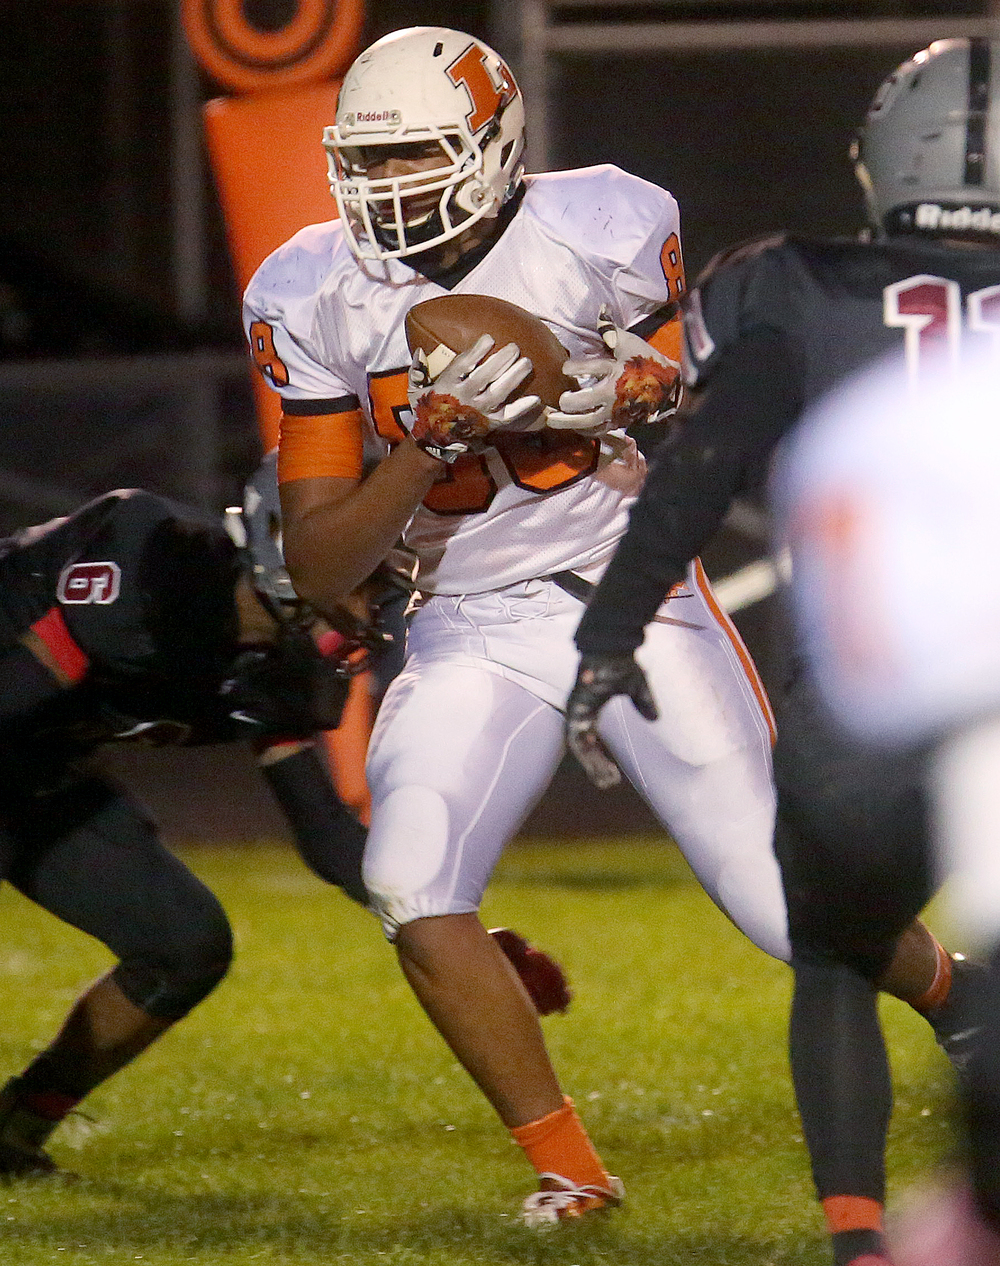 Lanphier ball carrier Davon Harris powers his way into the end zone for his team's third touchdown of the night. David Spencer/The State Journal-Register